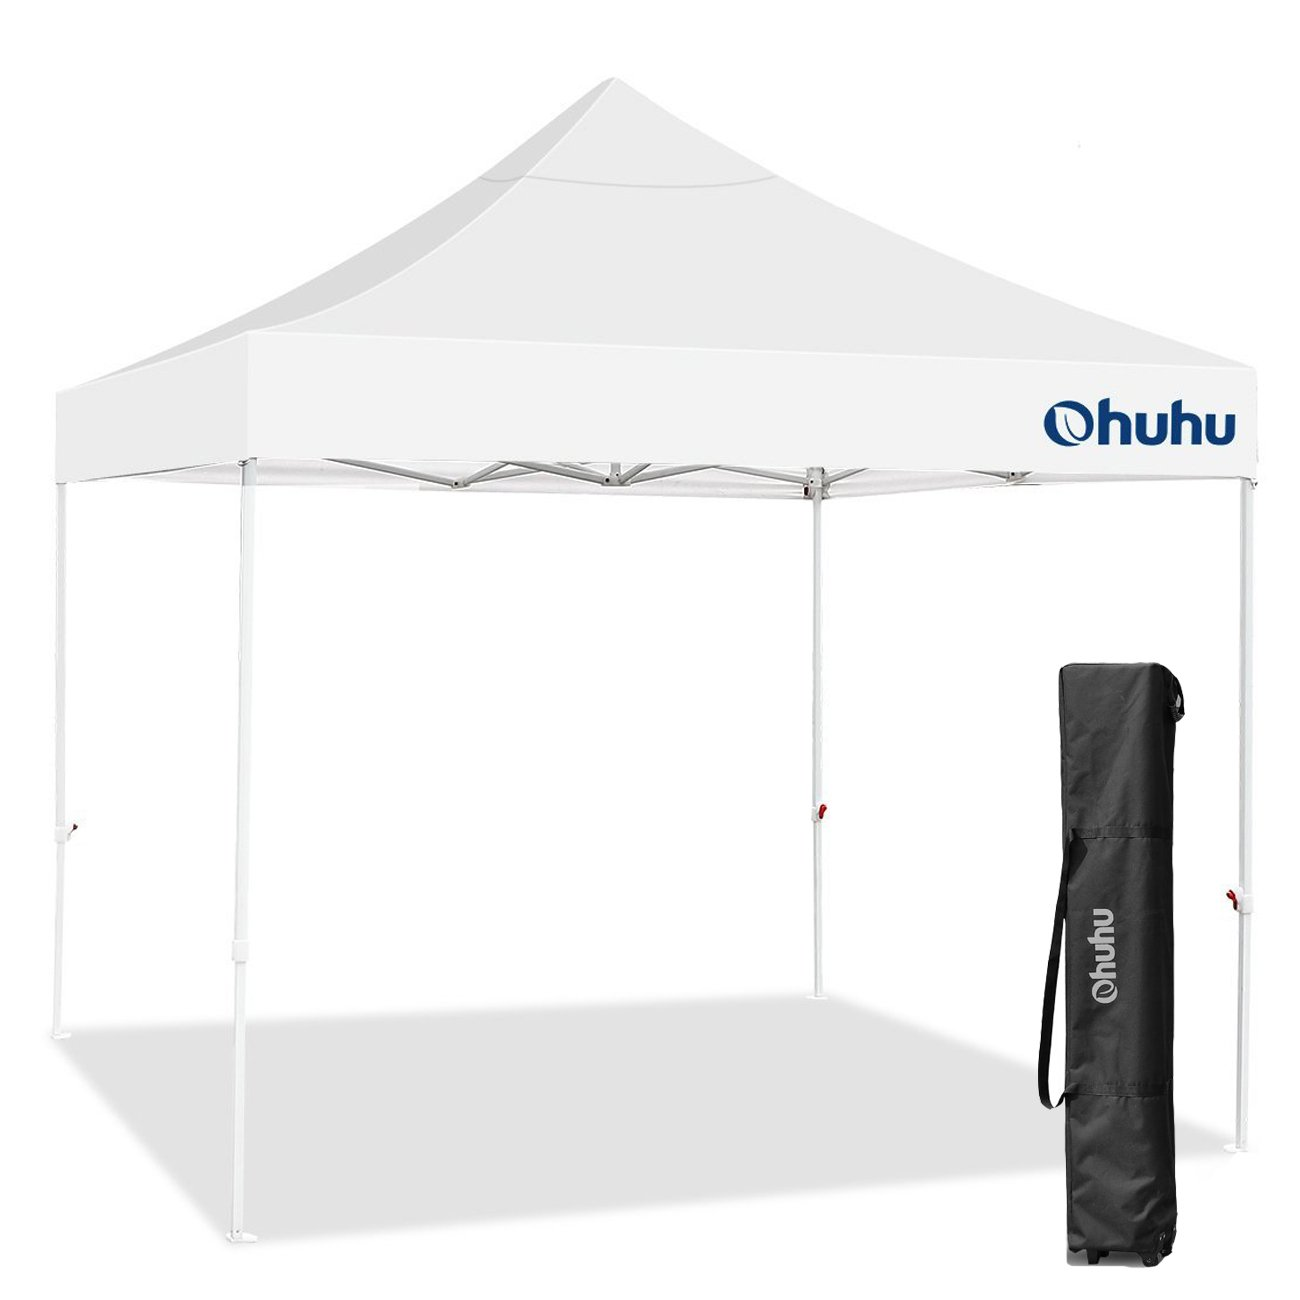 Ohuhu Pop-Up Canopy Tent Instant Shelter with Wheeled Carry Bag for Outdoor Activities Events, 10 by 10 Ft, White